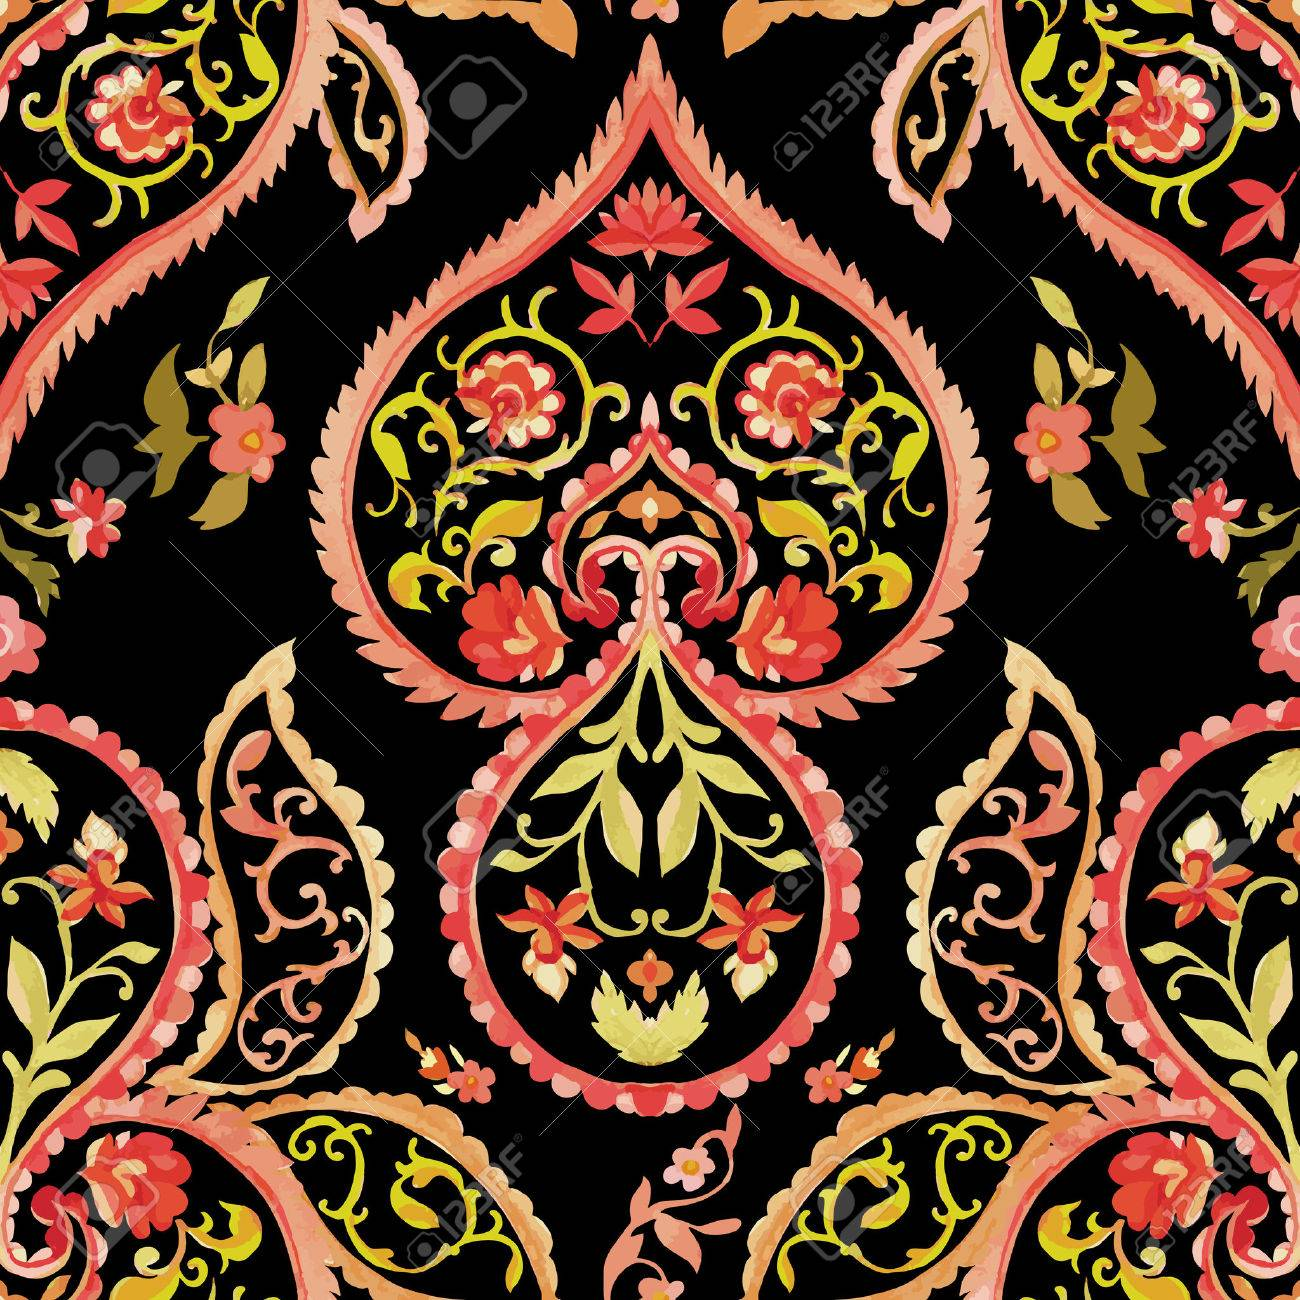 Watercolor paisley seamless pattern  Warm colors  Indian, persian